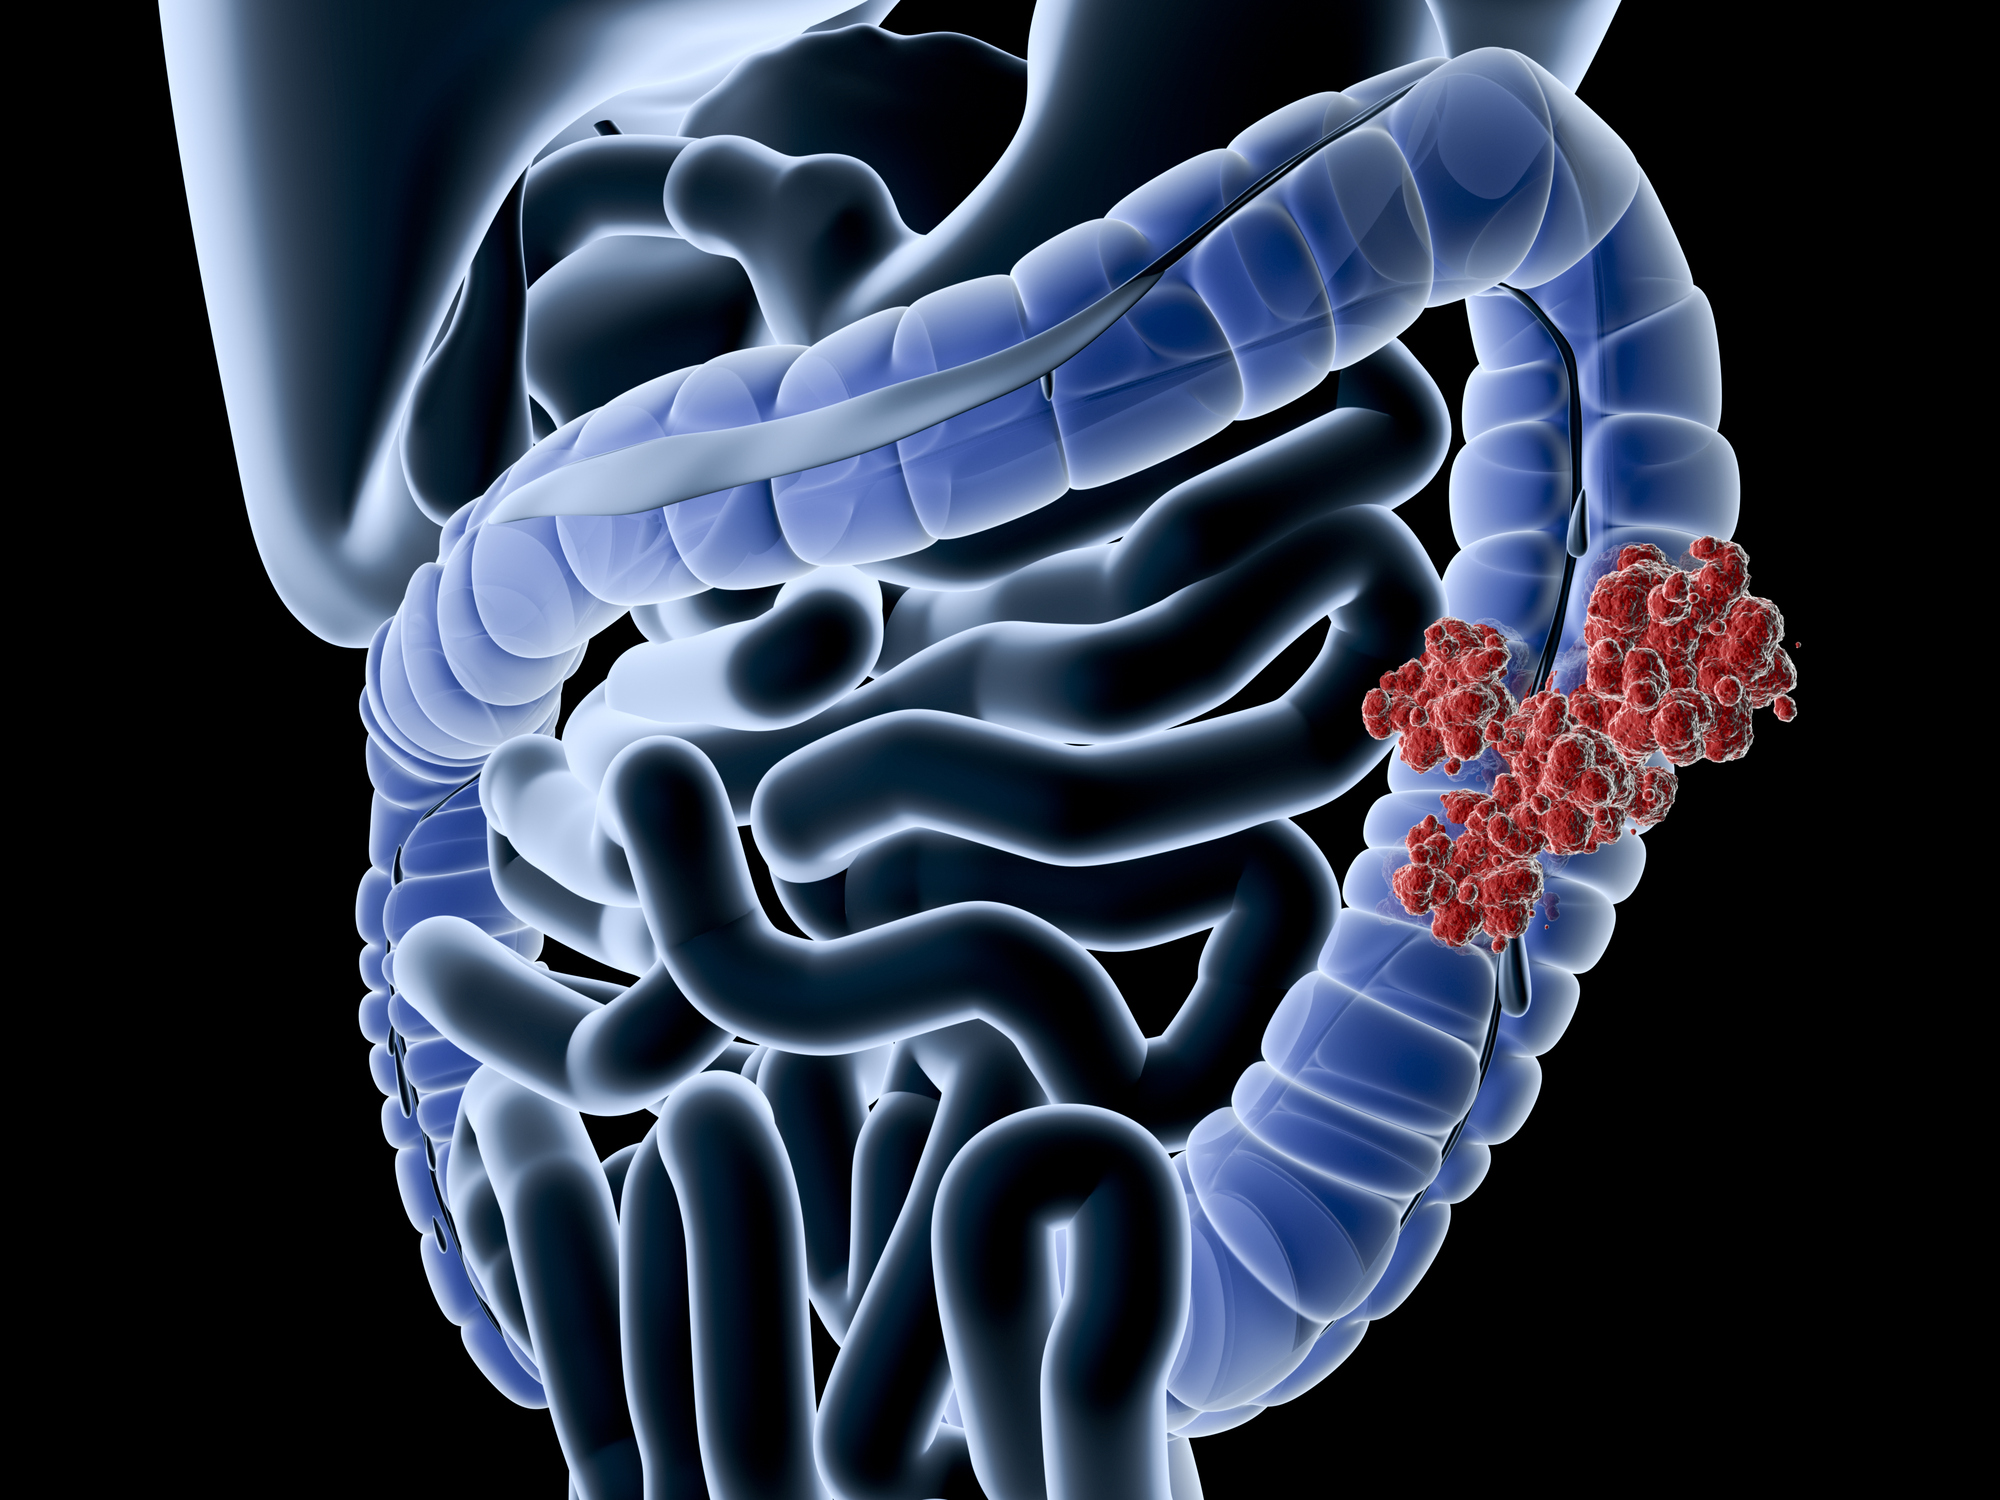 How Long Does It Take Colon Polyps to Turn Cancerous?